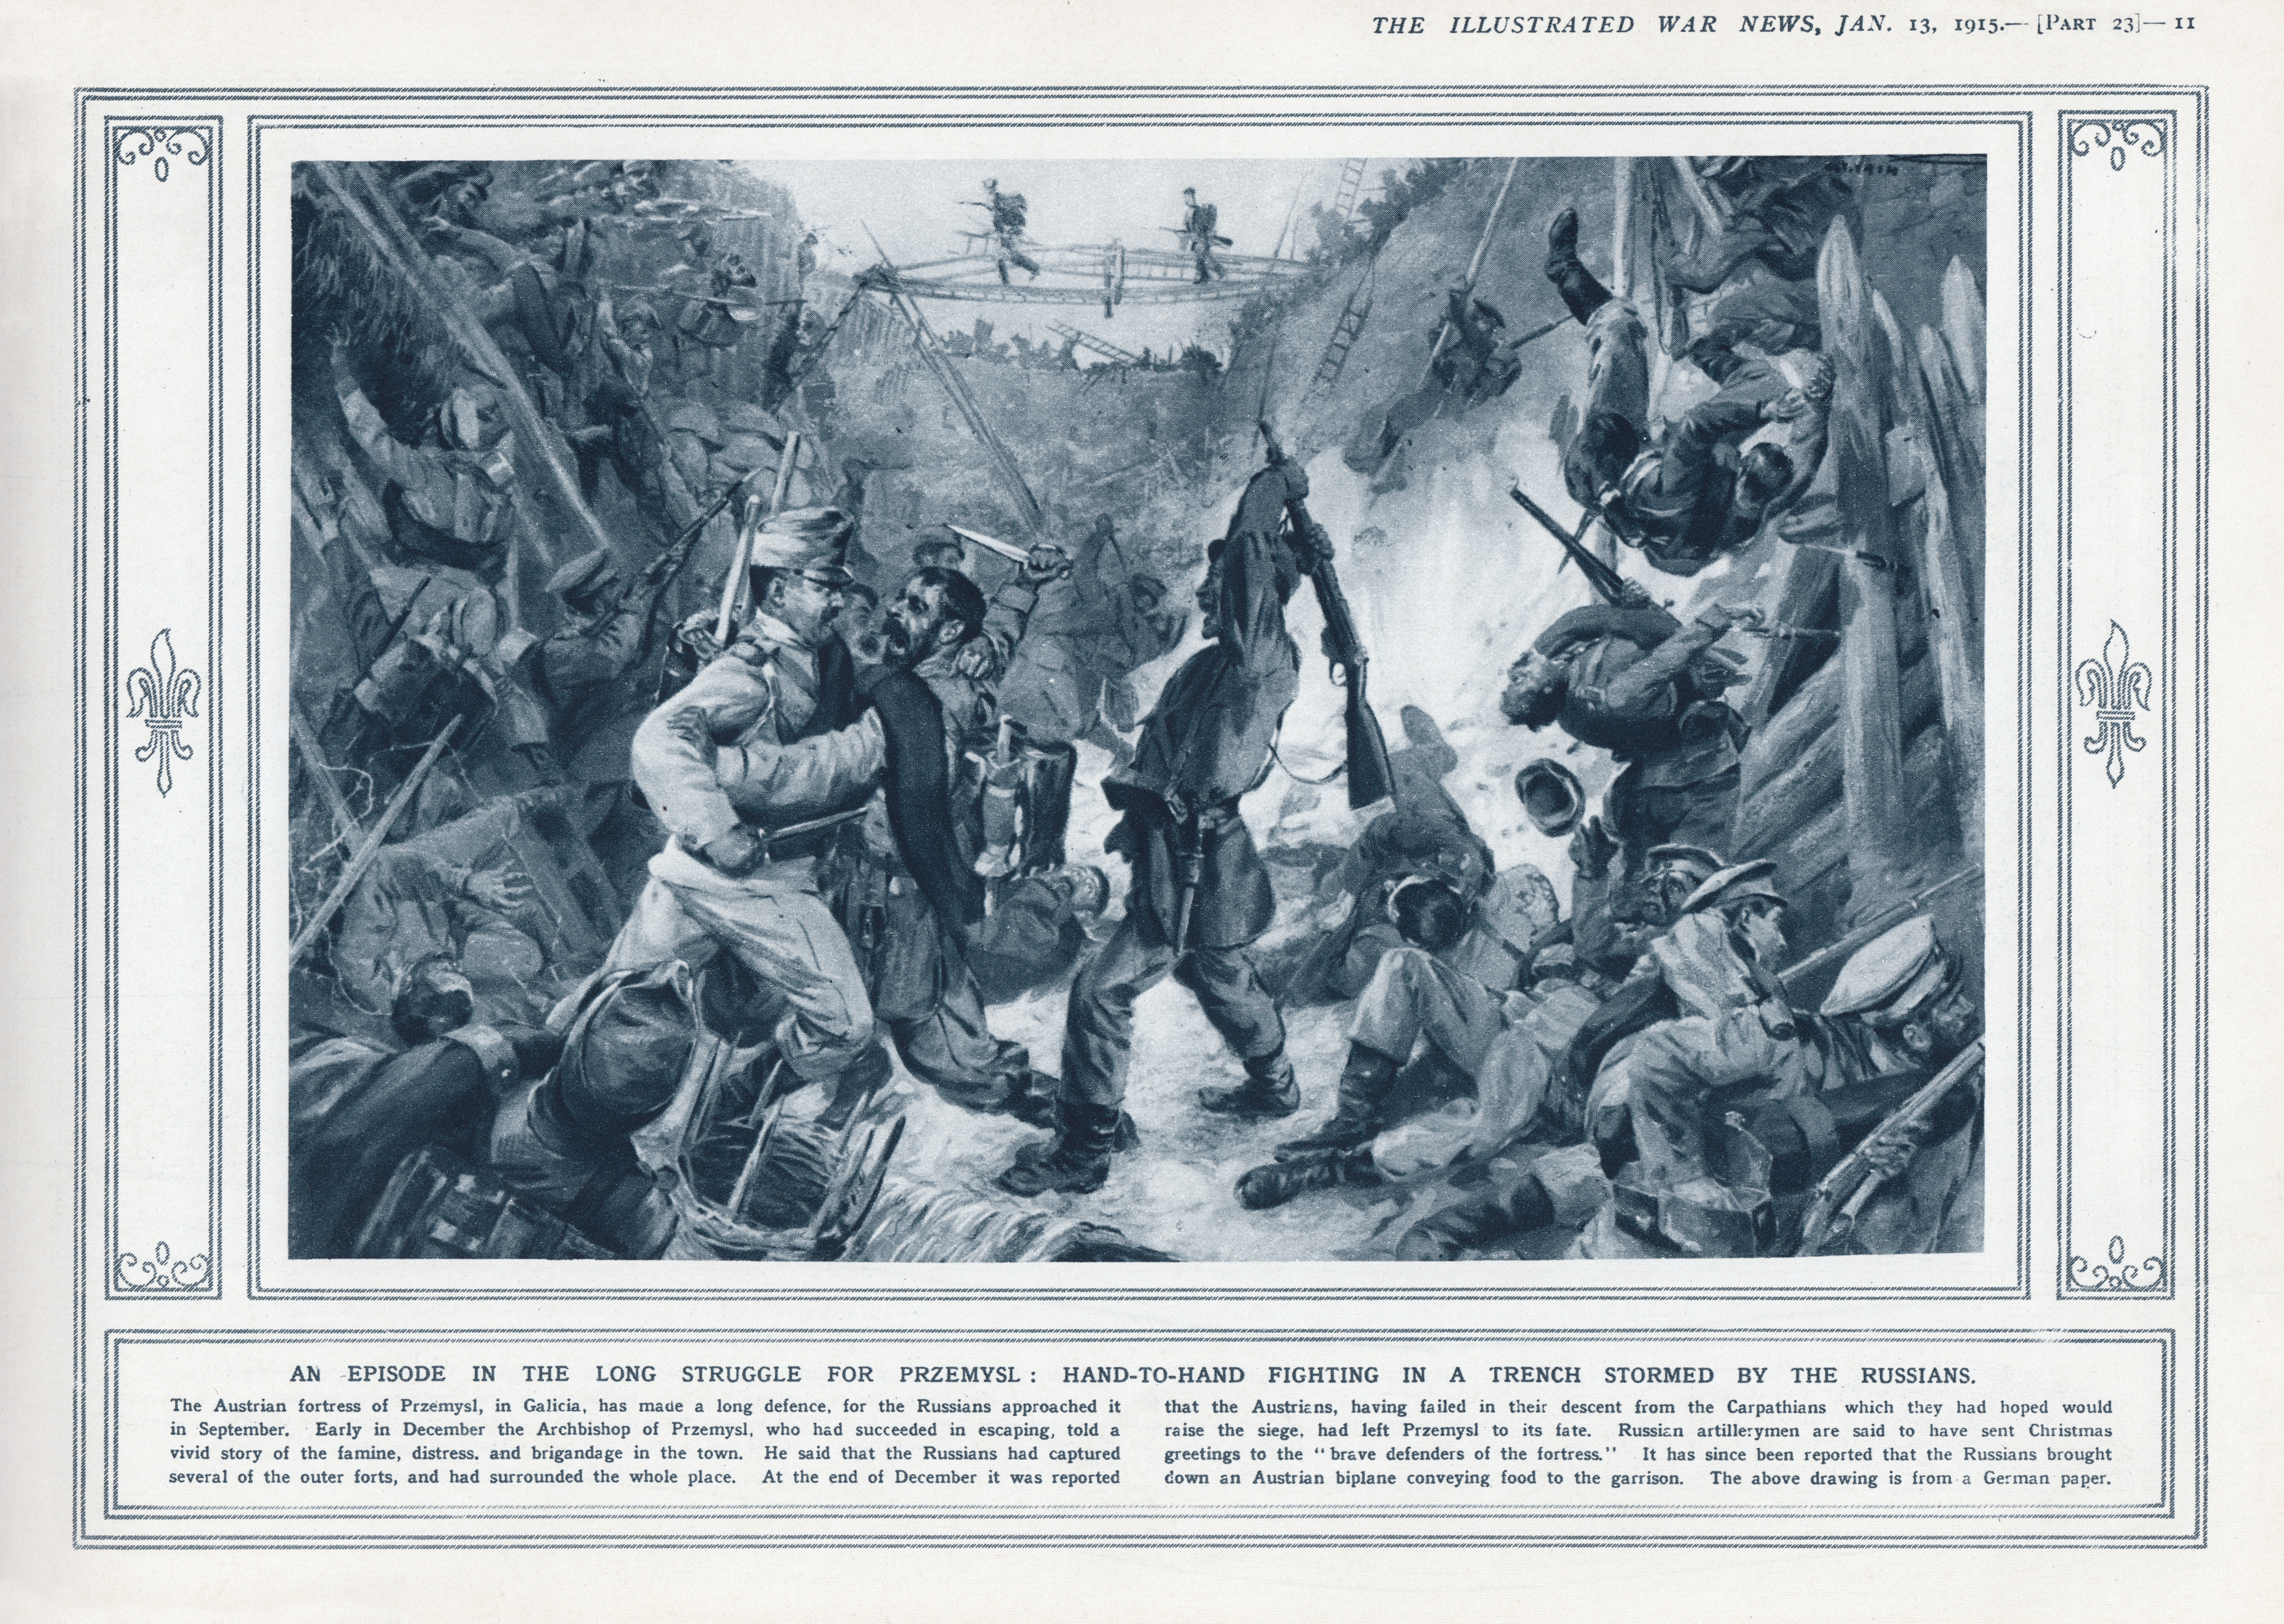 File:Illustrated War News, Jan. 13, 1915, page 11 - Siege of ... on